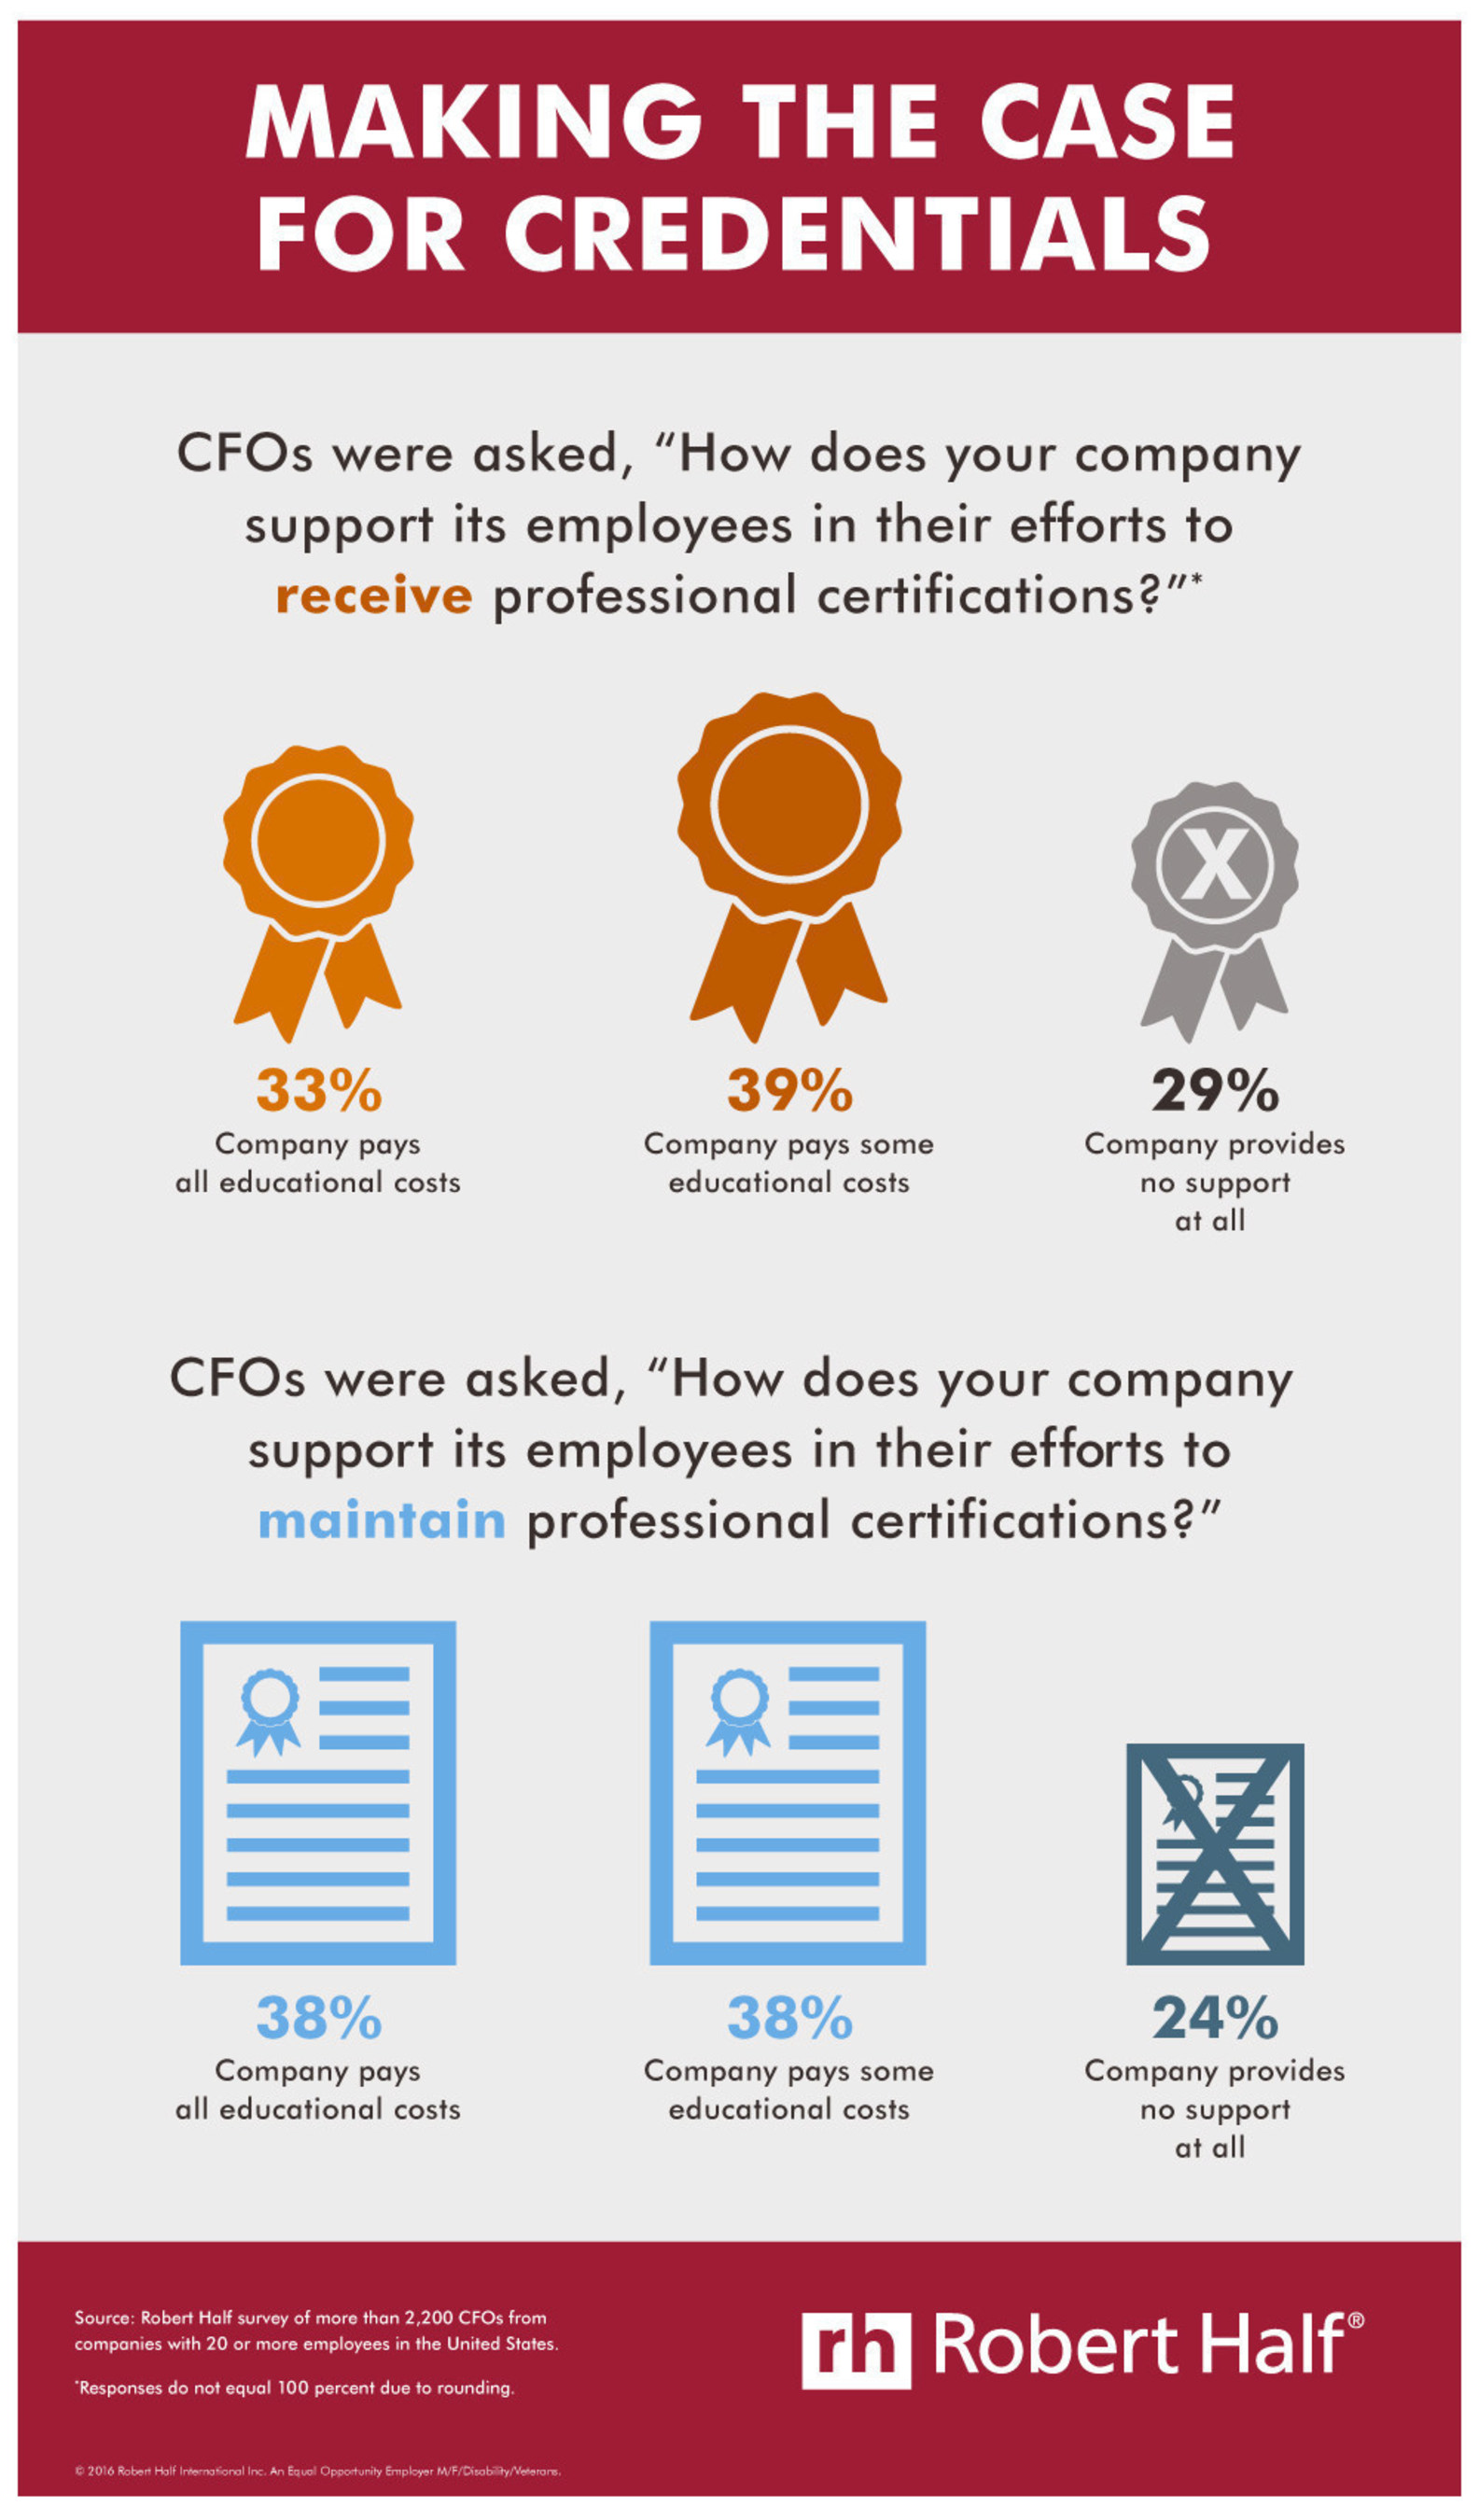 Making the Case for Credentials